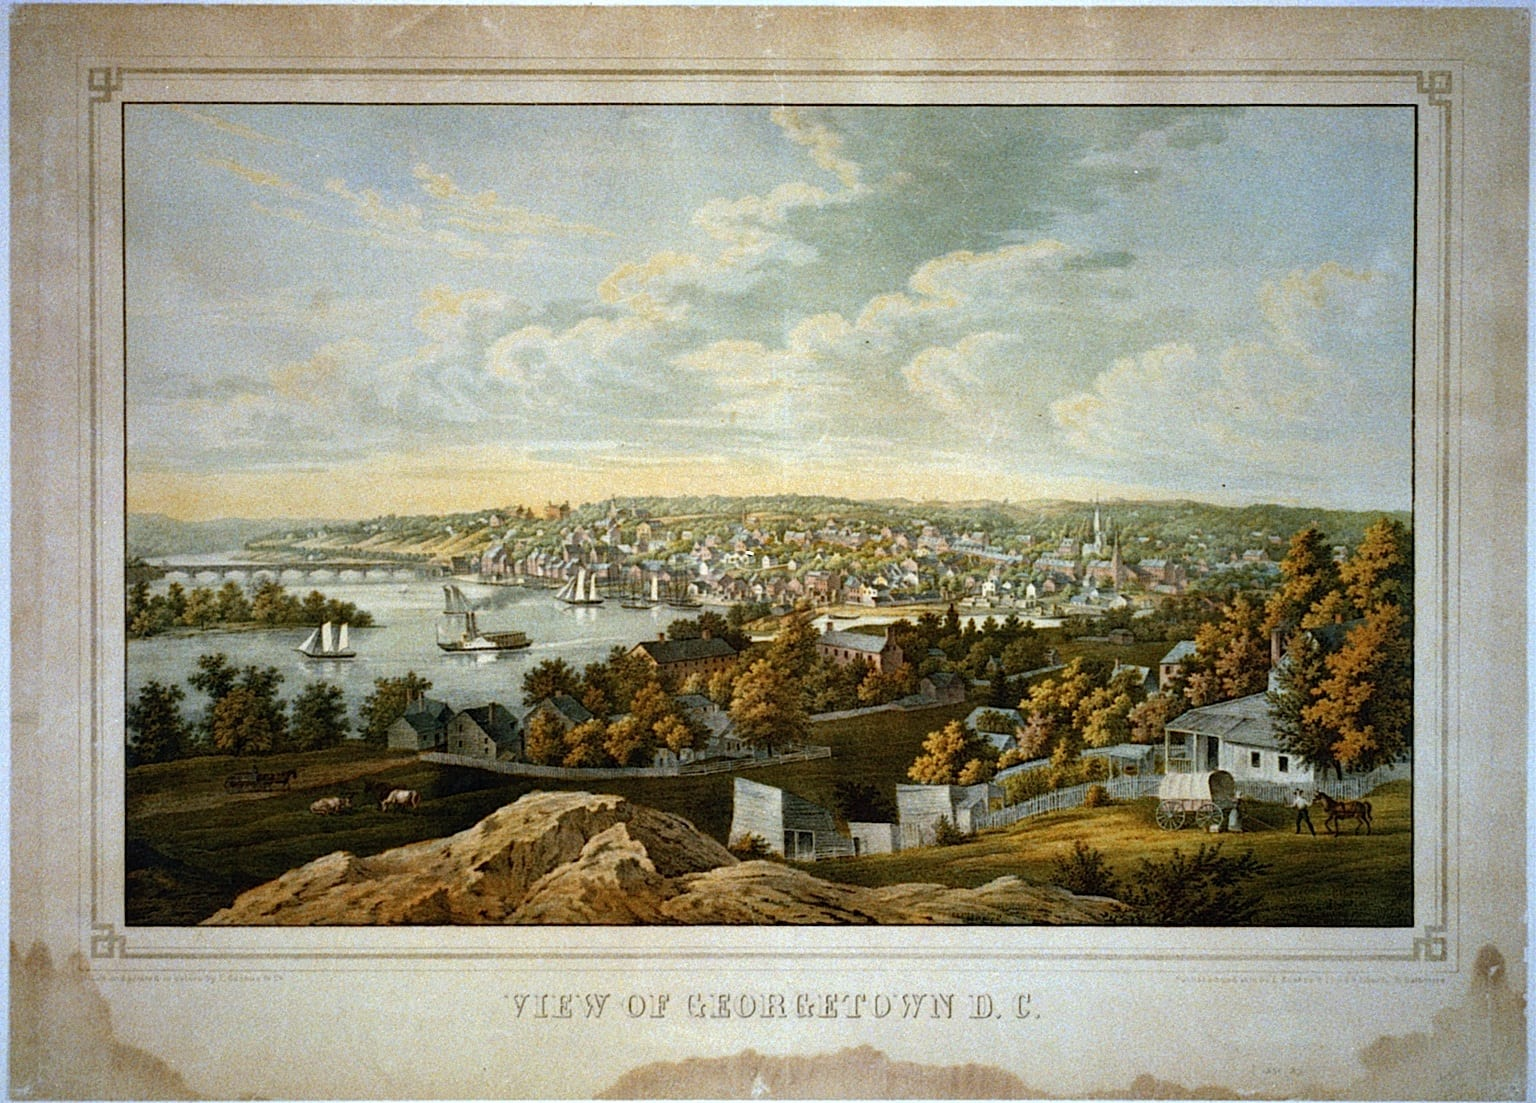 View of Georgetown D.C. / lith. and printed in colors by E. Sachse & Co.